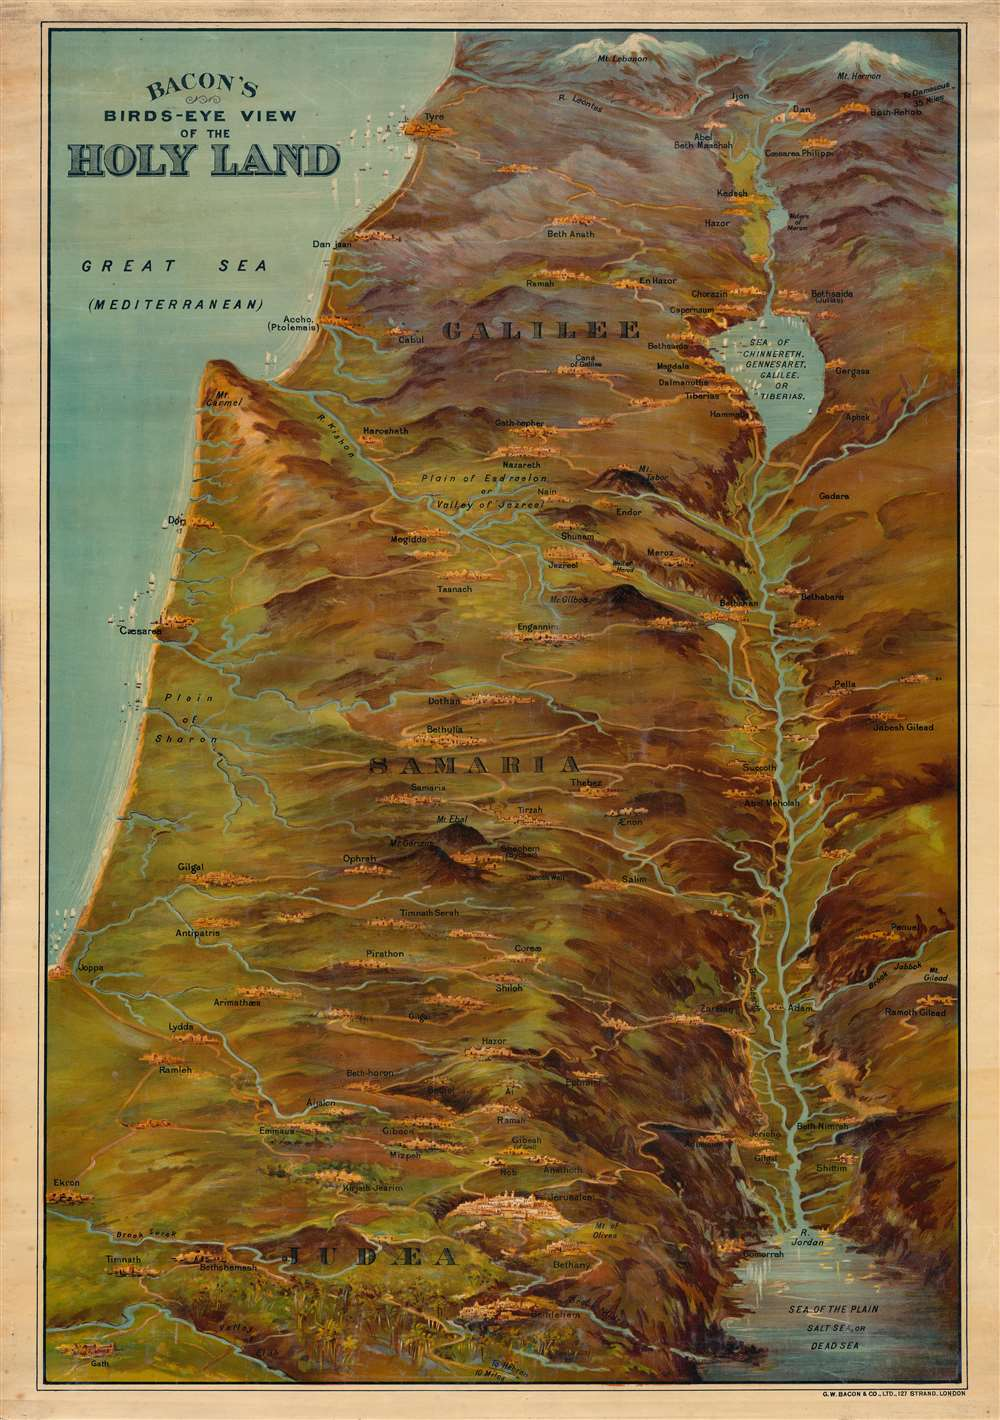 Bacon's Bird's-Eye View of the Holy Land. - Main View